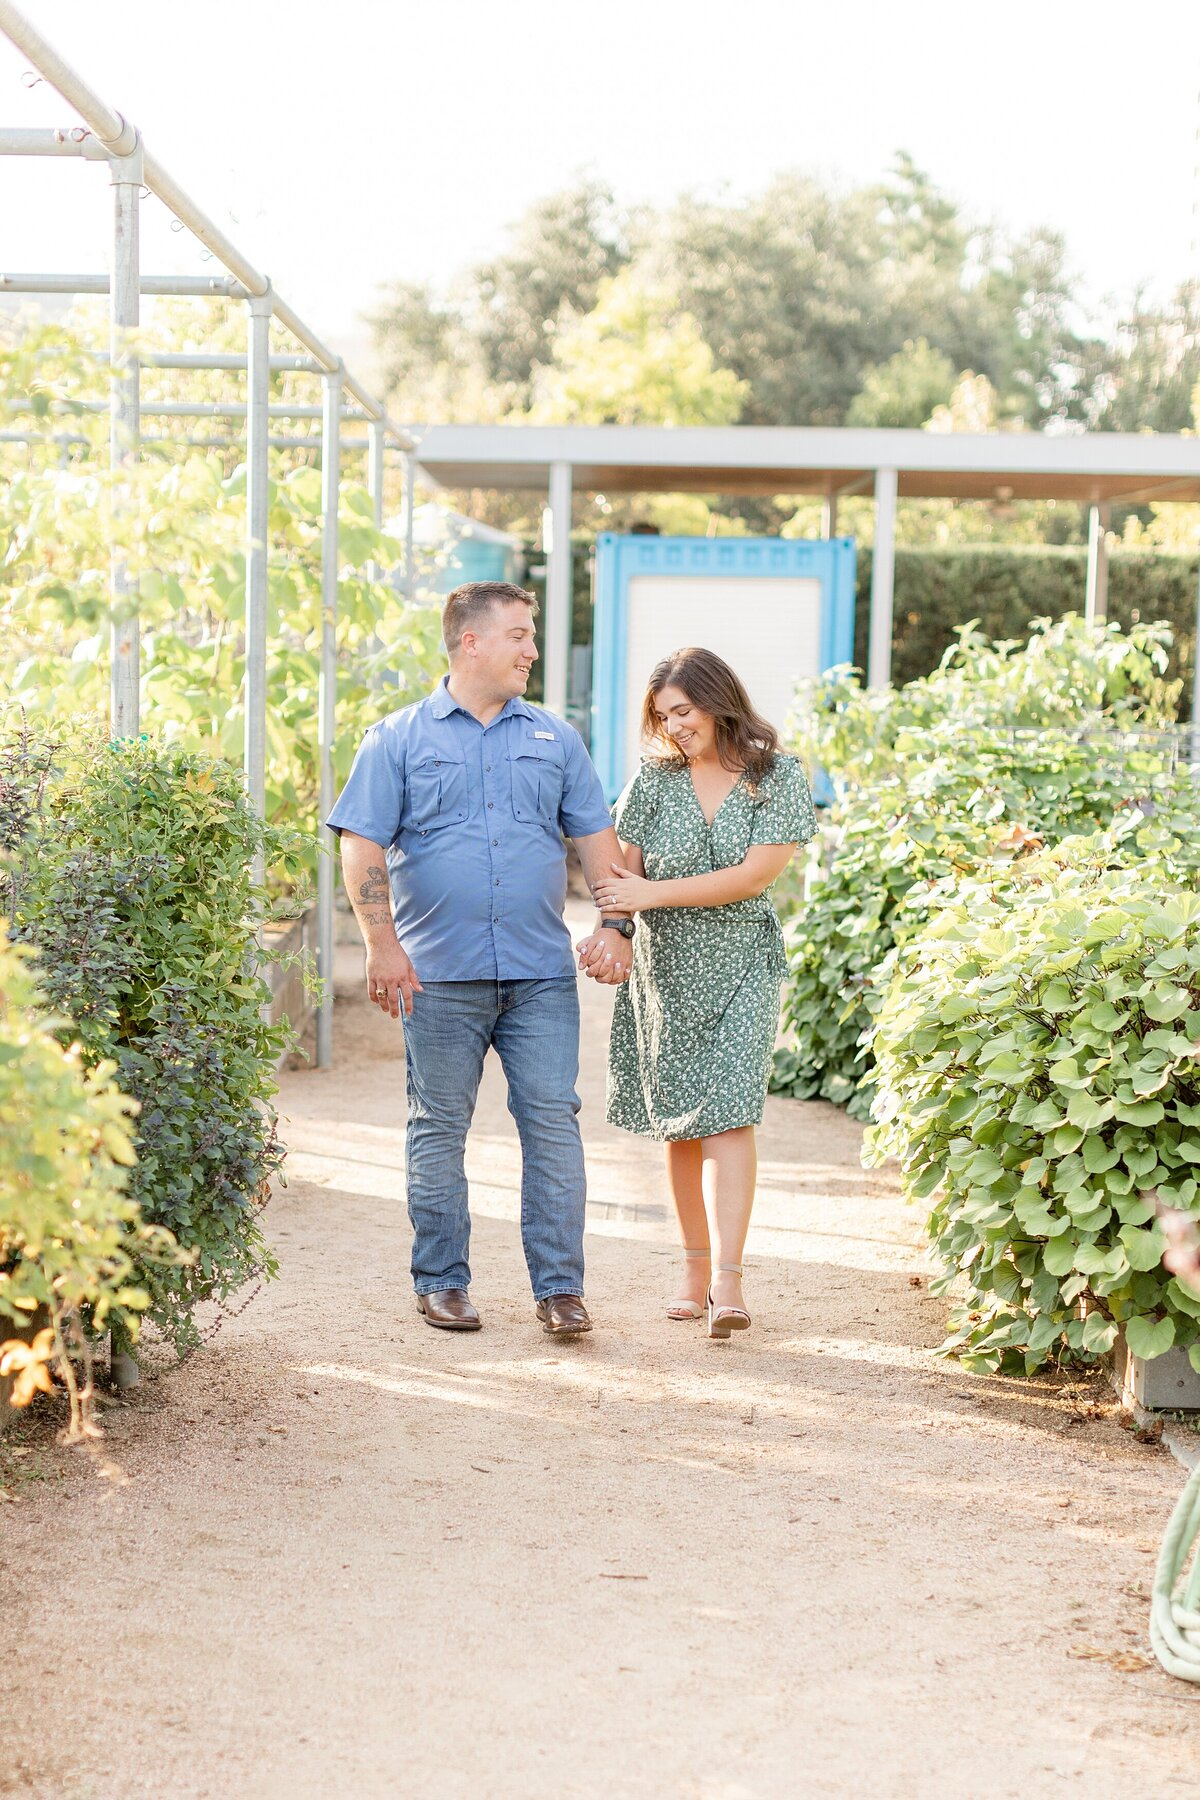 McGovern Centennial Gardens Engagement Photography Bright Airy Walking